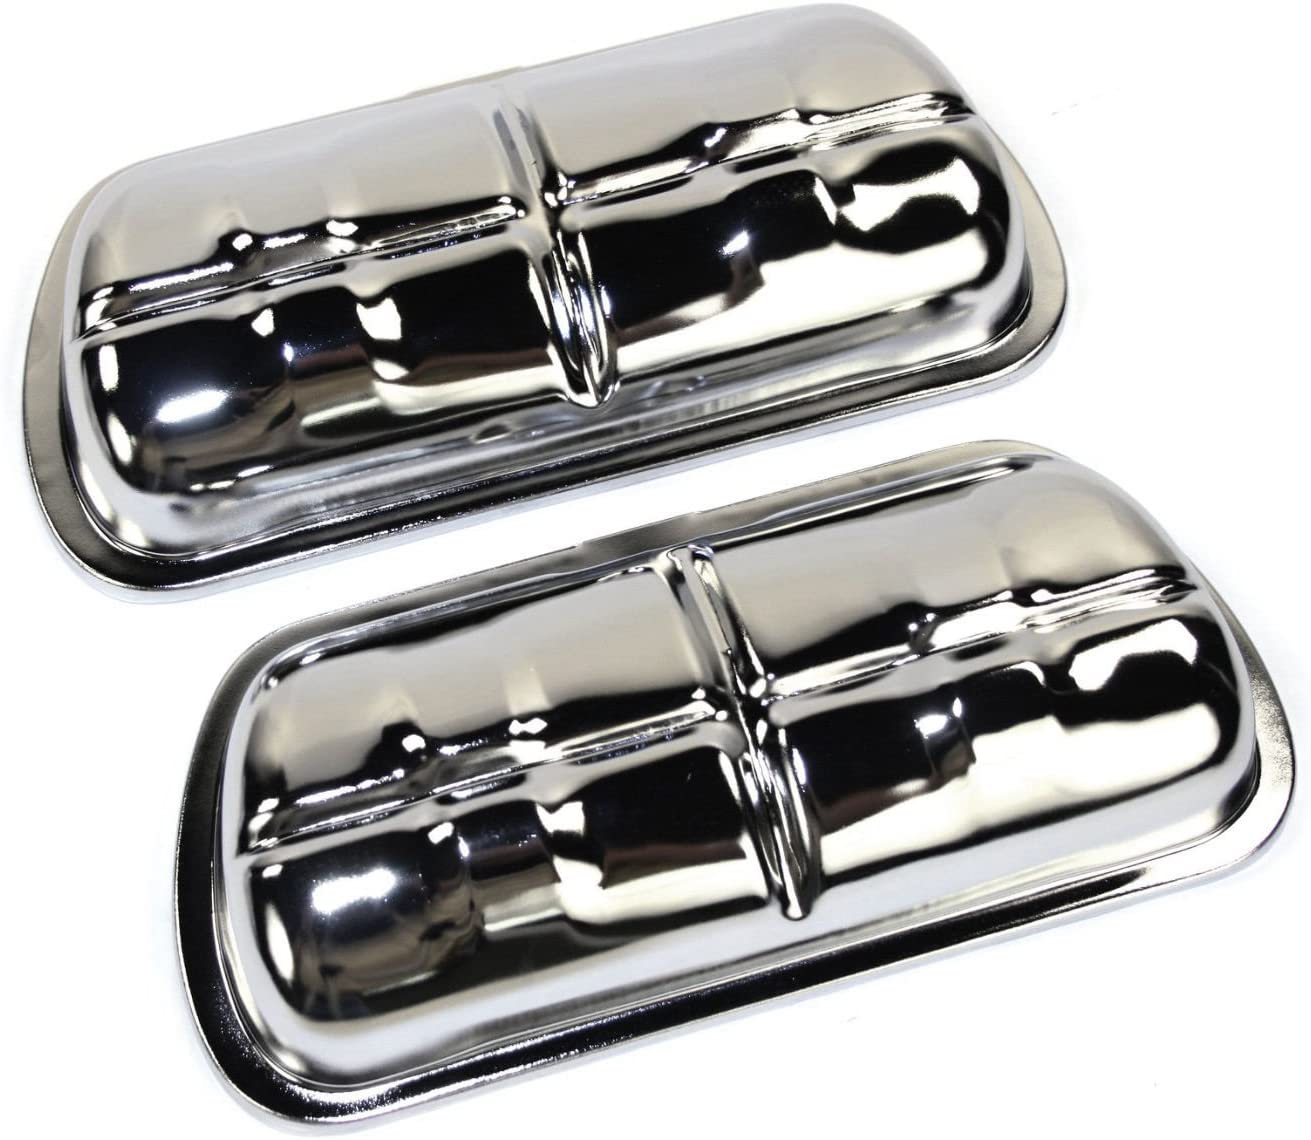 New Shipping Free Shipping Valve Sales Covers Chrome Clip On Fits VW wi Compatible Up 1500cc